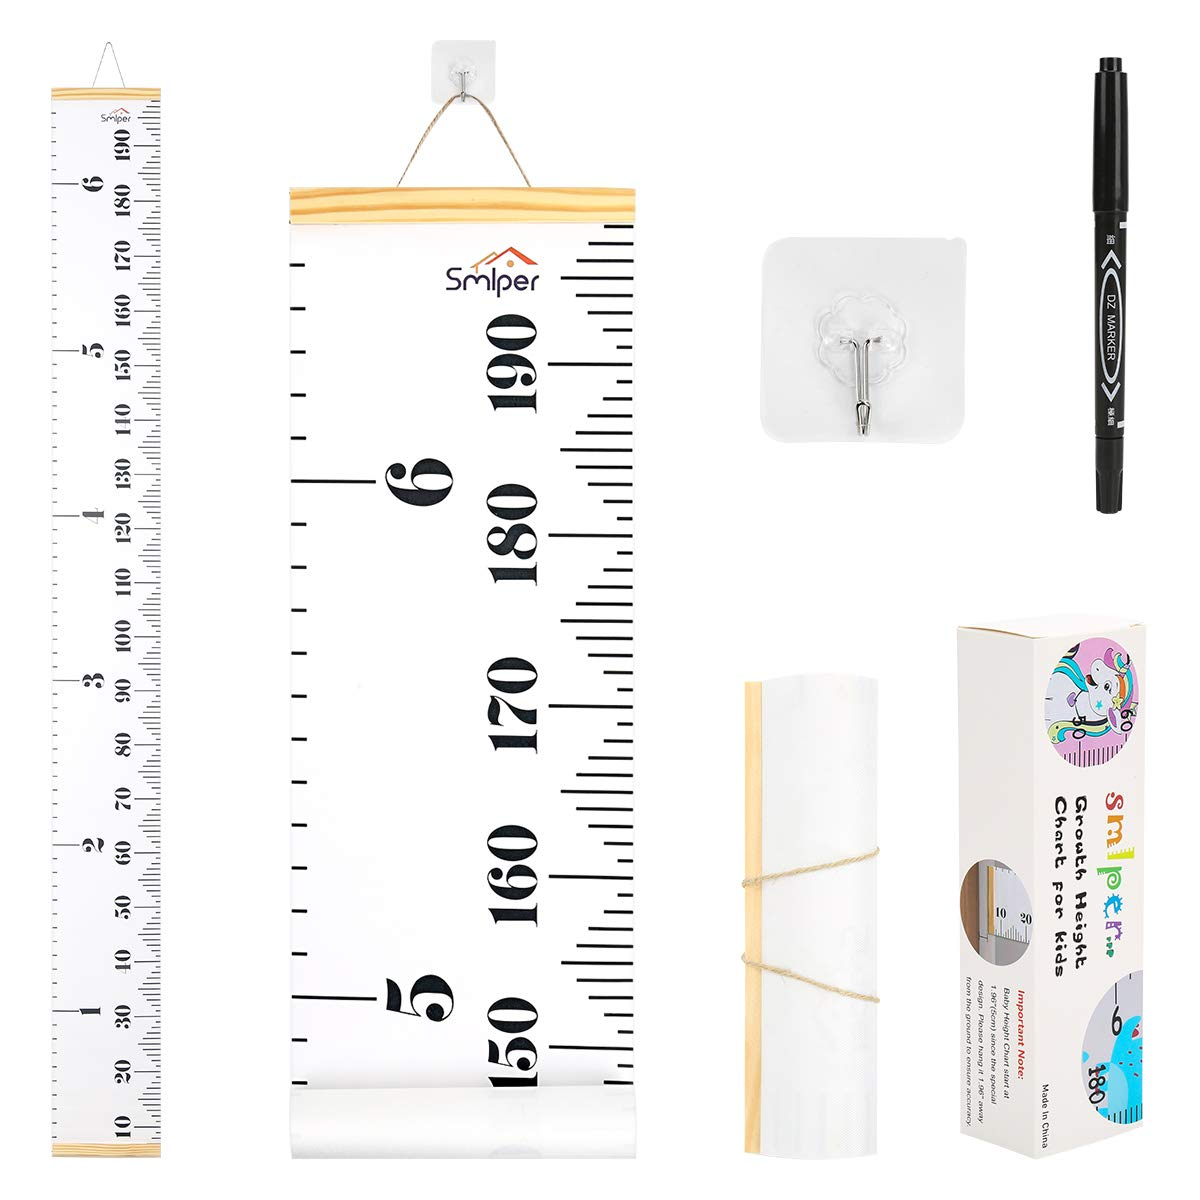 """Smlper Growth Chart for Kids,Roll-up Height Chart for Boys Girls,Wood Frame Fabric Canvas Height Measurement Ruler for Kids Nursery Room,Removable Wall Decor 79""""x7.9"""""""